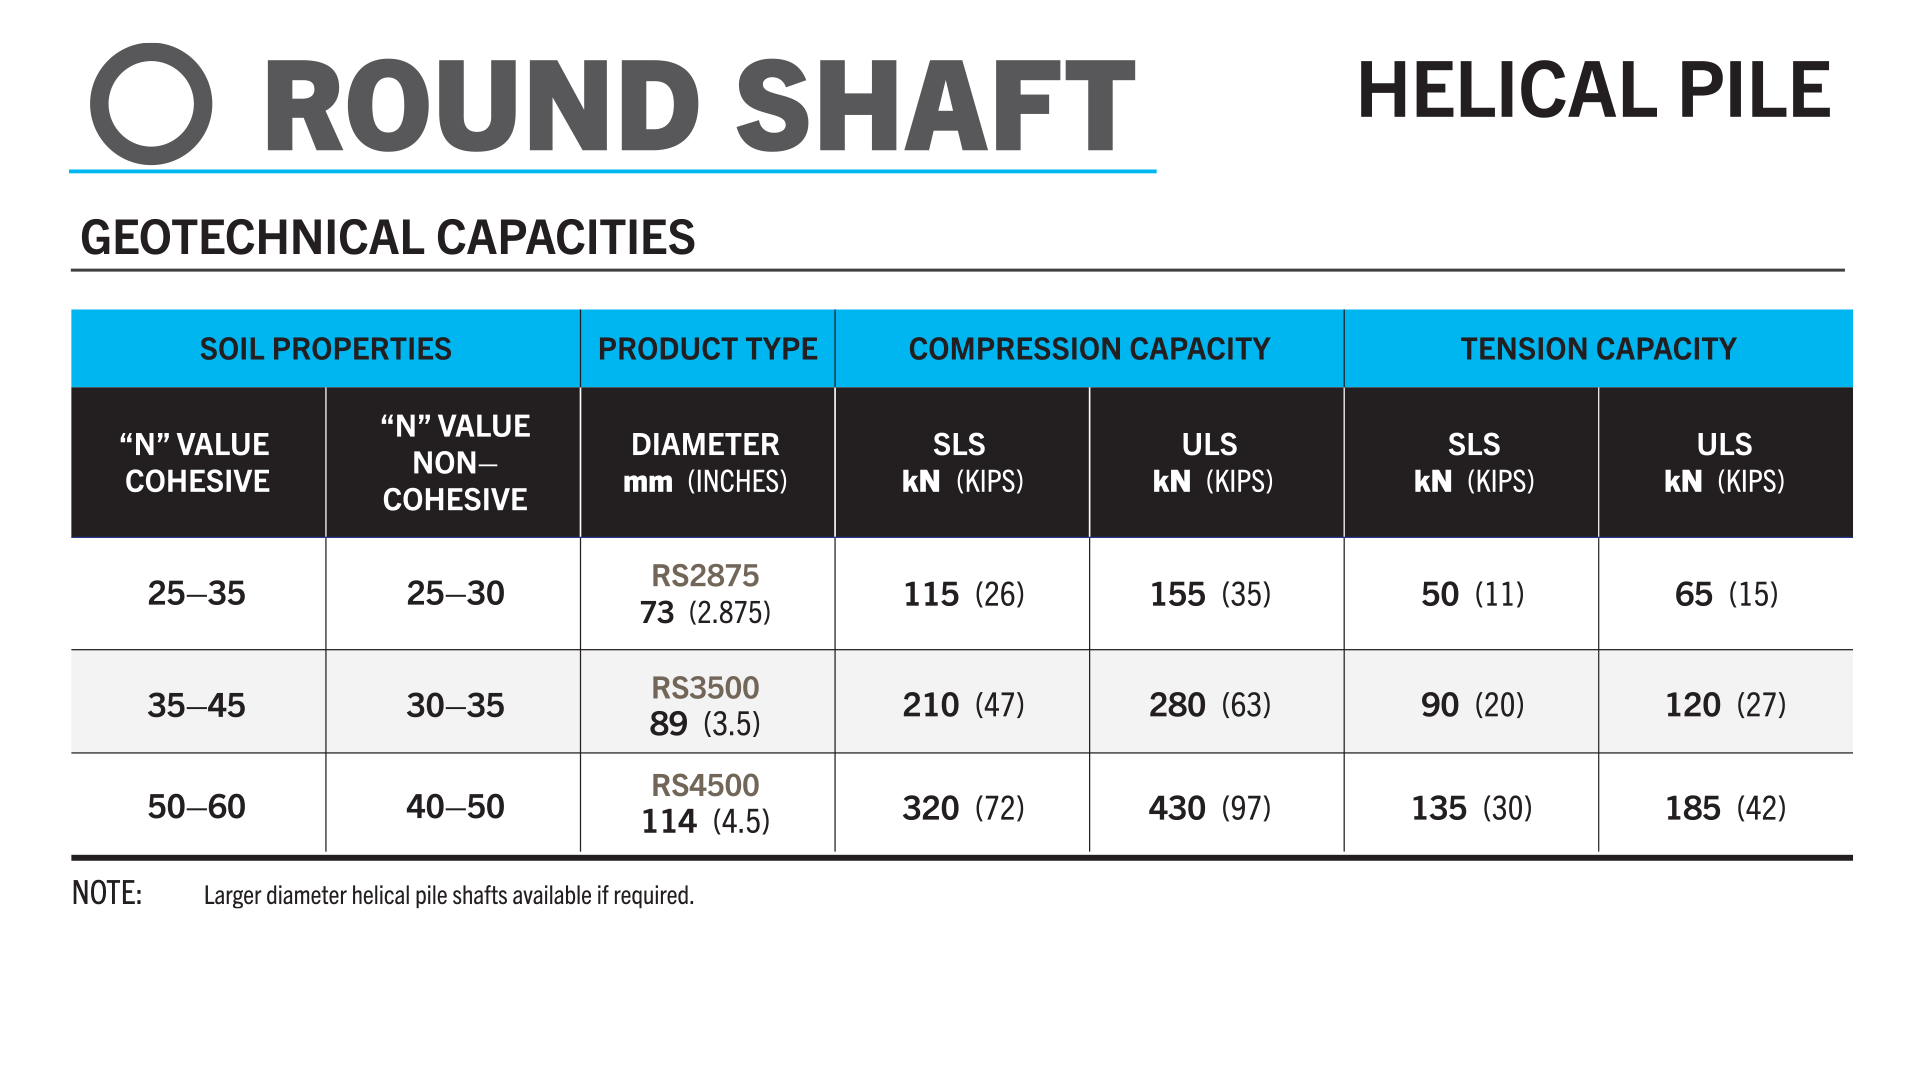 Geotechnical Capacities of Round Shaft Helical